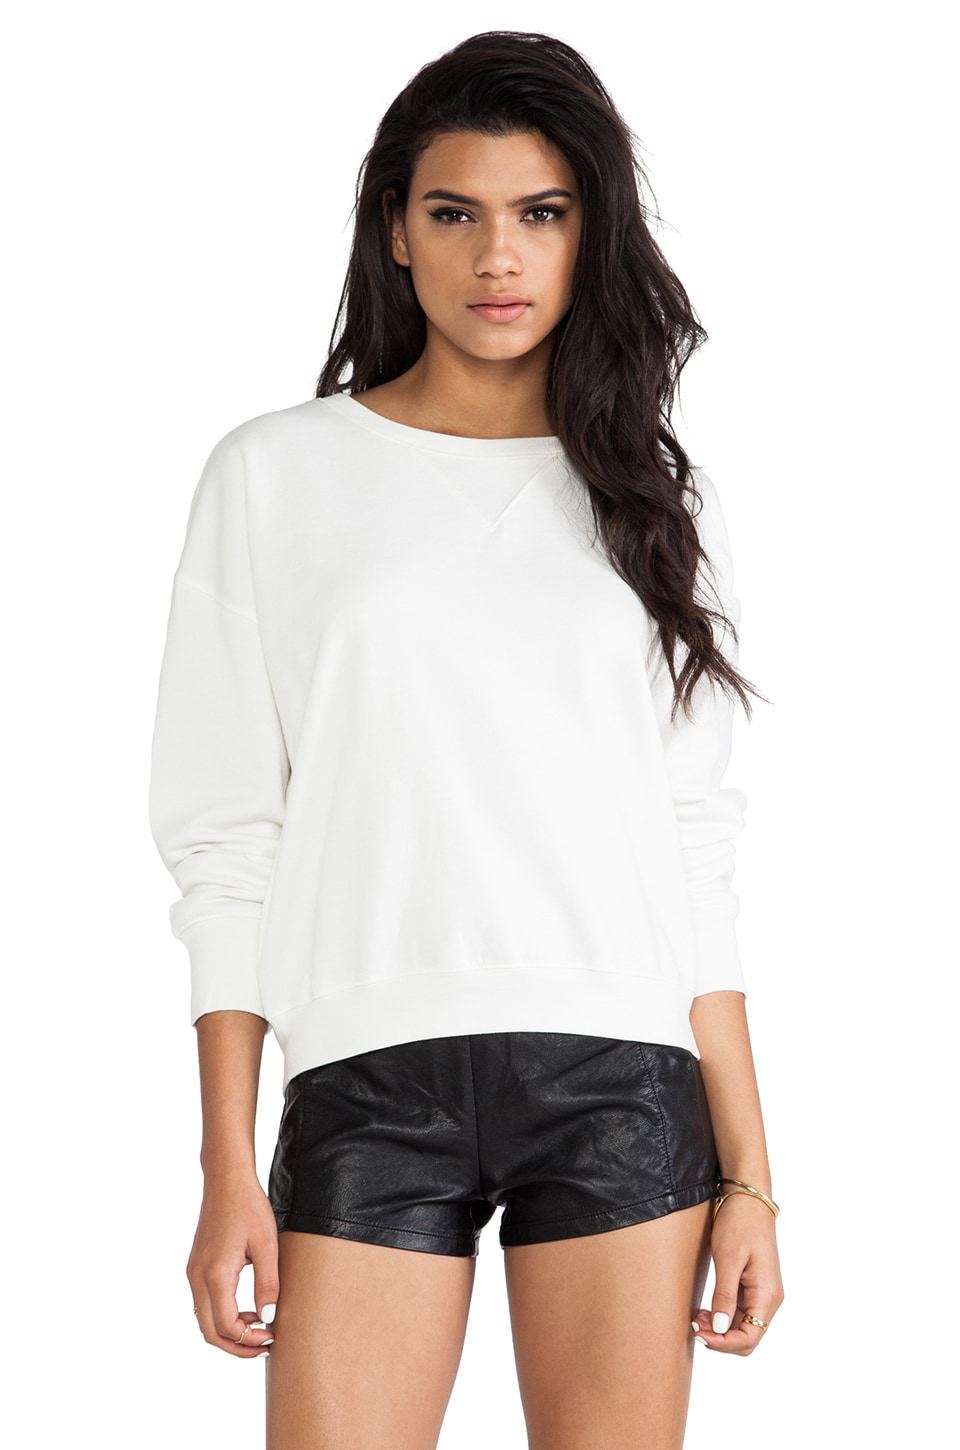 BLK DNM Sweatshirt 6 in Milk